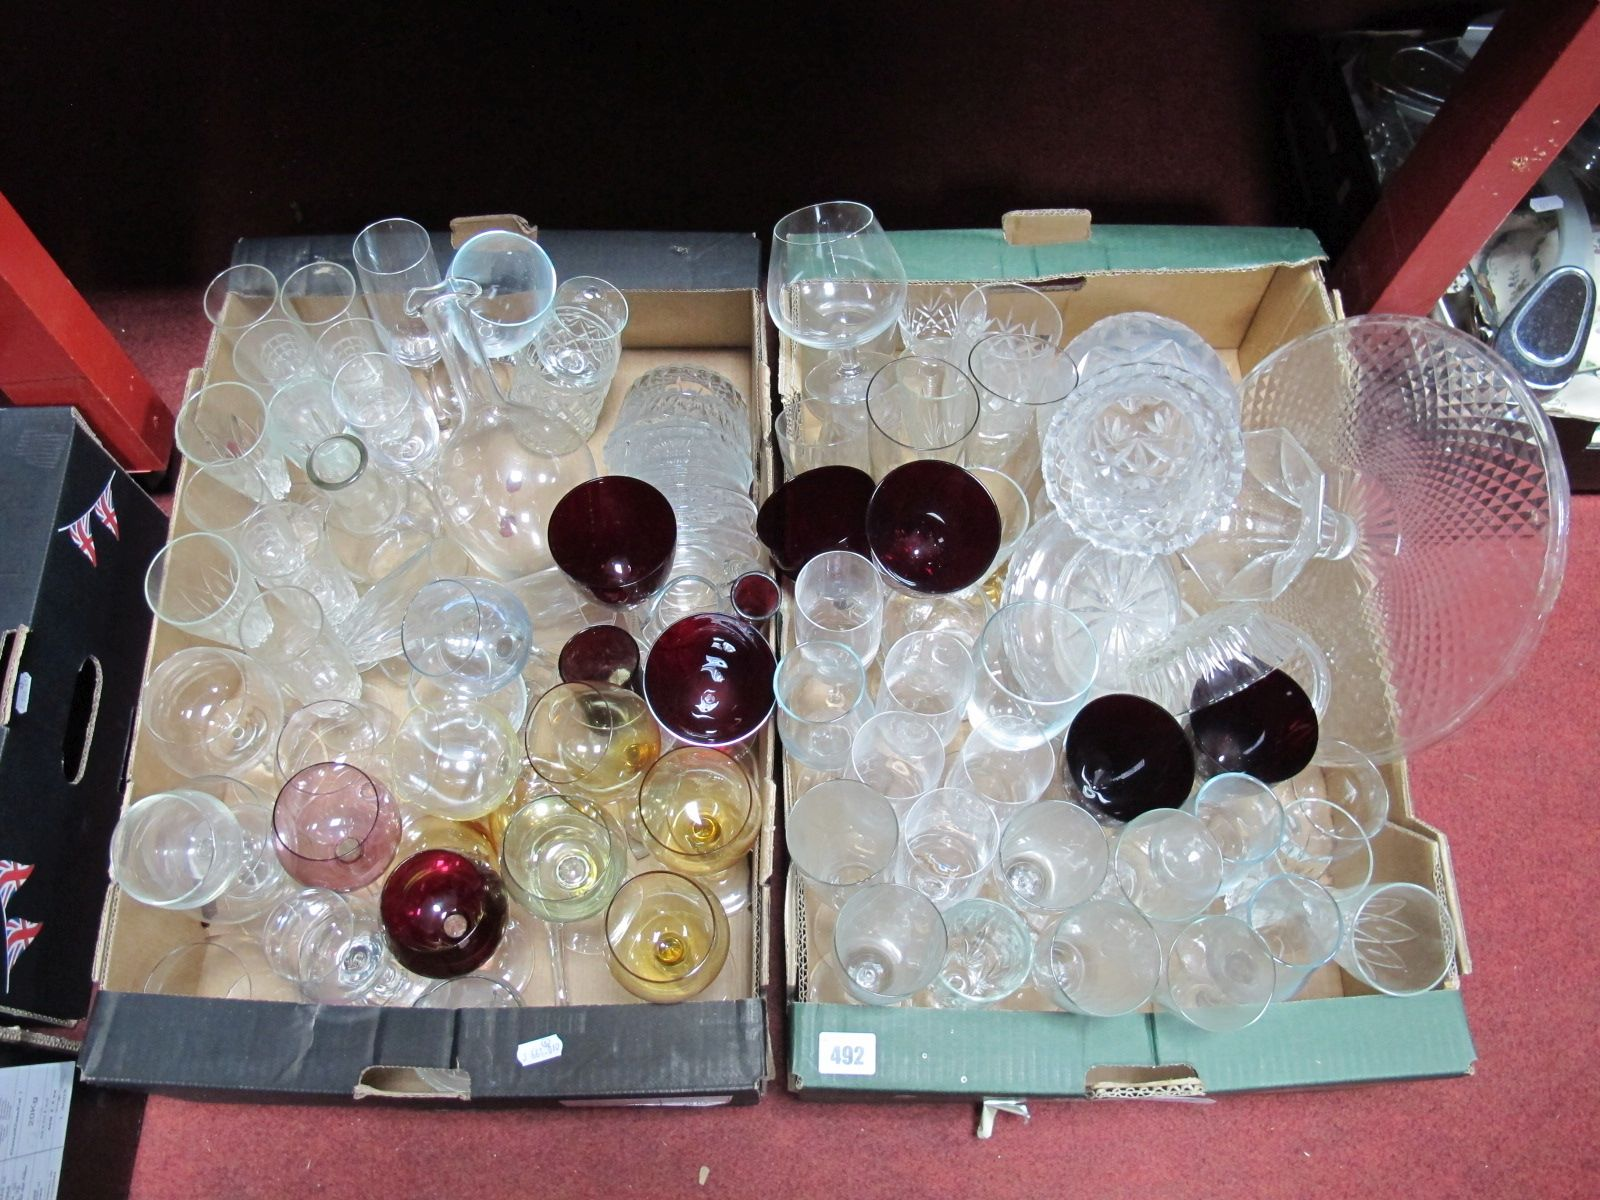 Lot 492 - Harlequin and Ruby Bowl Wine/Hock Glasses, comport, other glassware:- Two Boxes